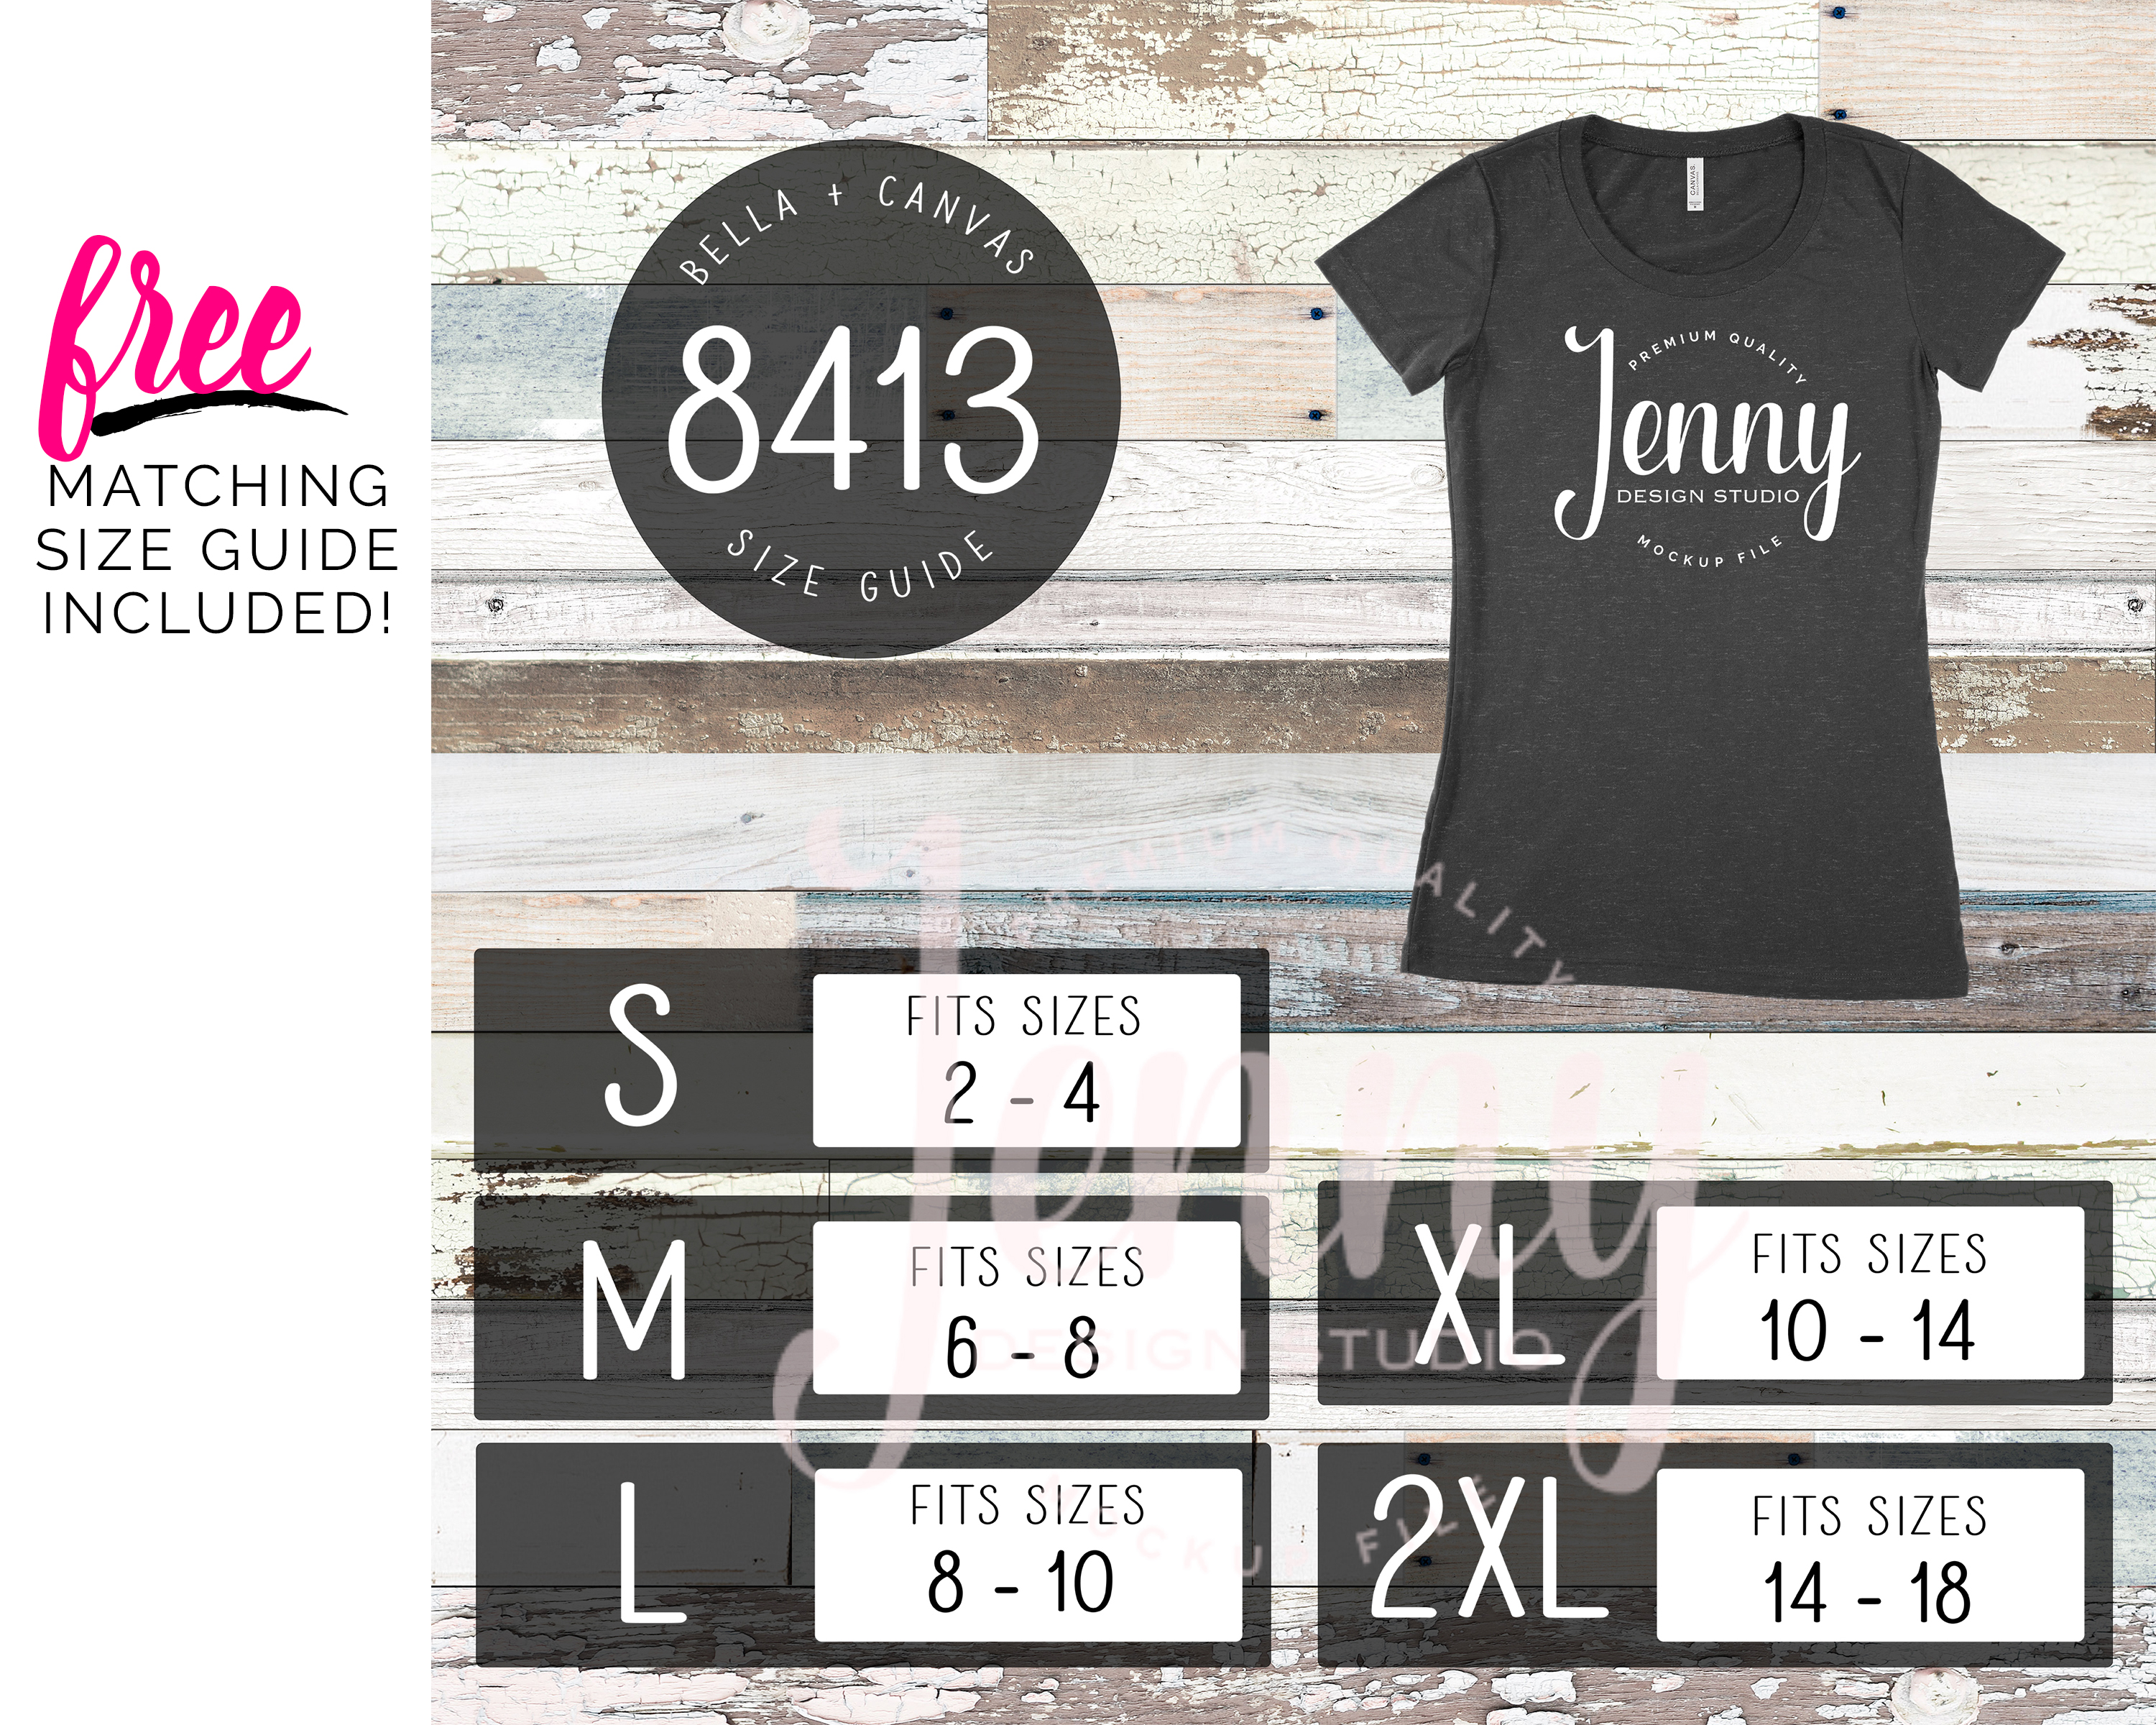 Bella Canvas 8413 Mockup Bundle, Triblend Tshirt Mockup example image 2